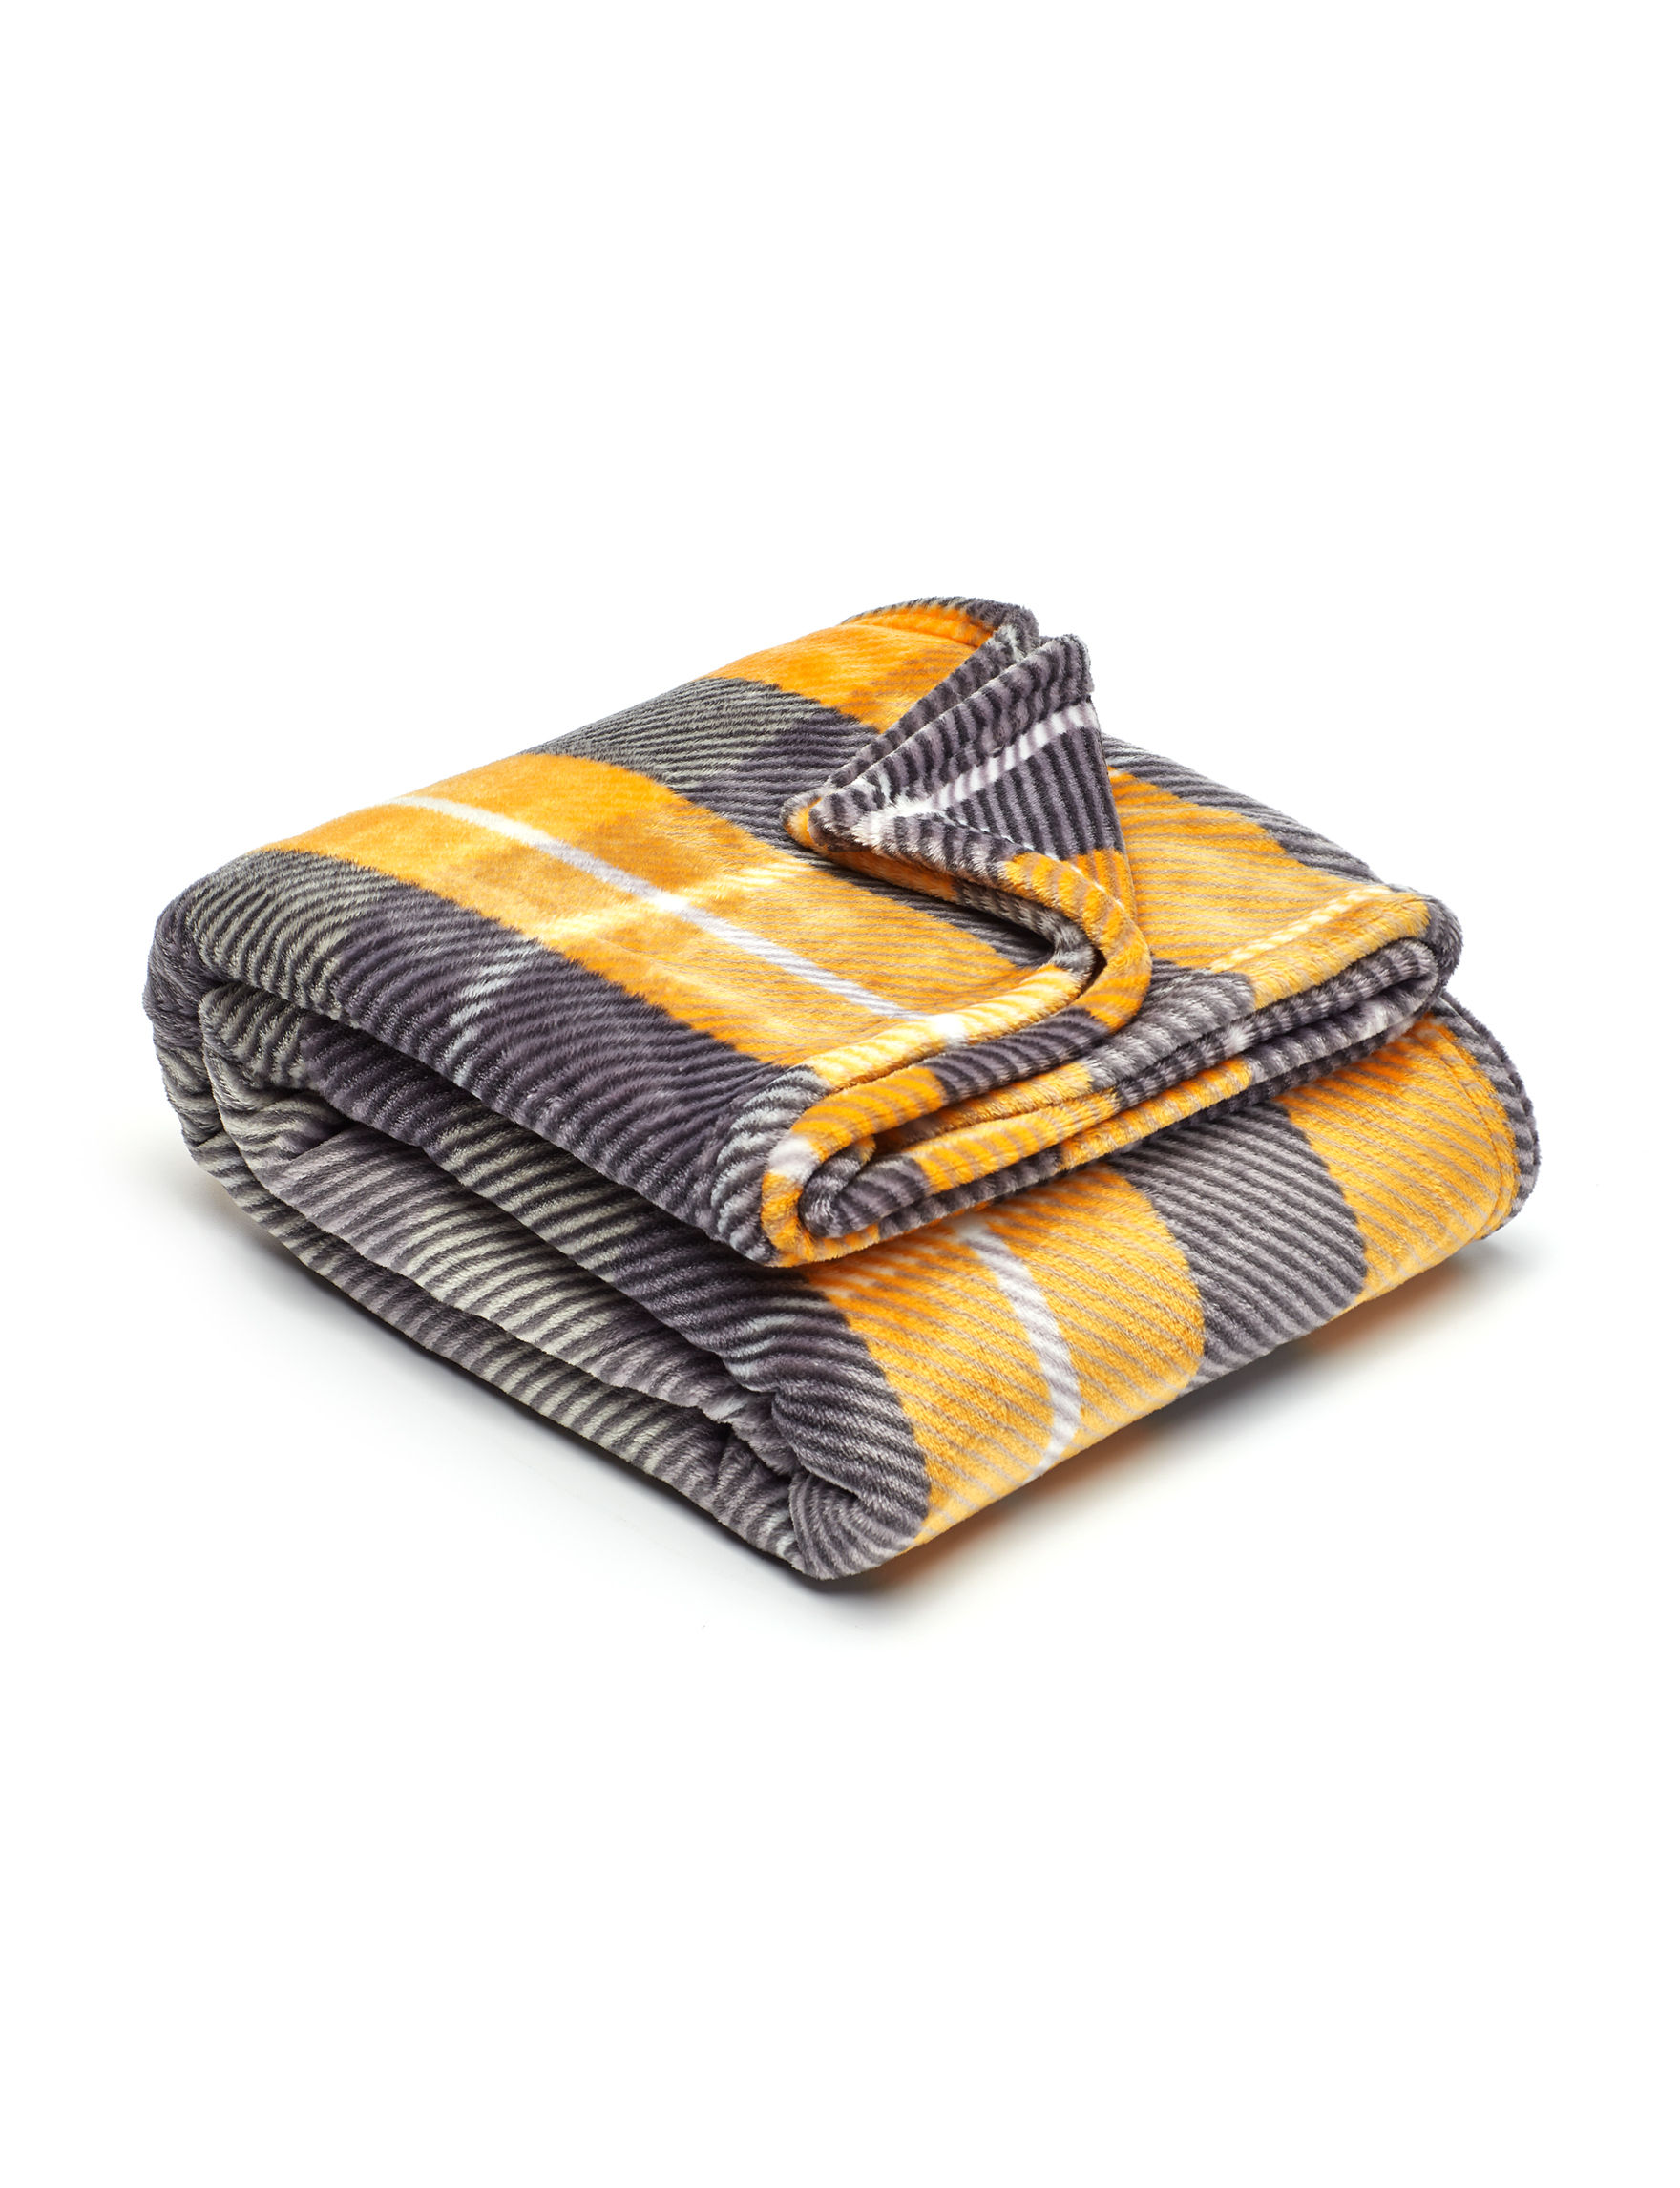 Dream Home NY Yellow / Blue / White Blankets & Throws